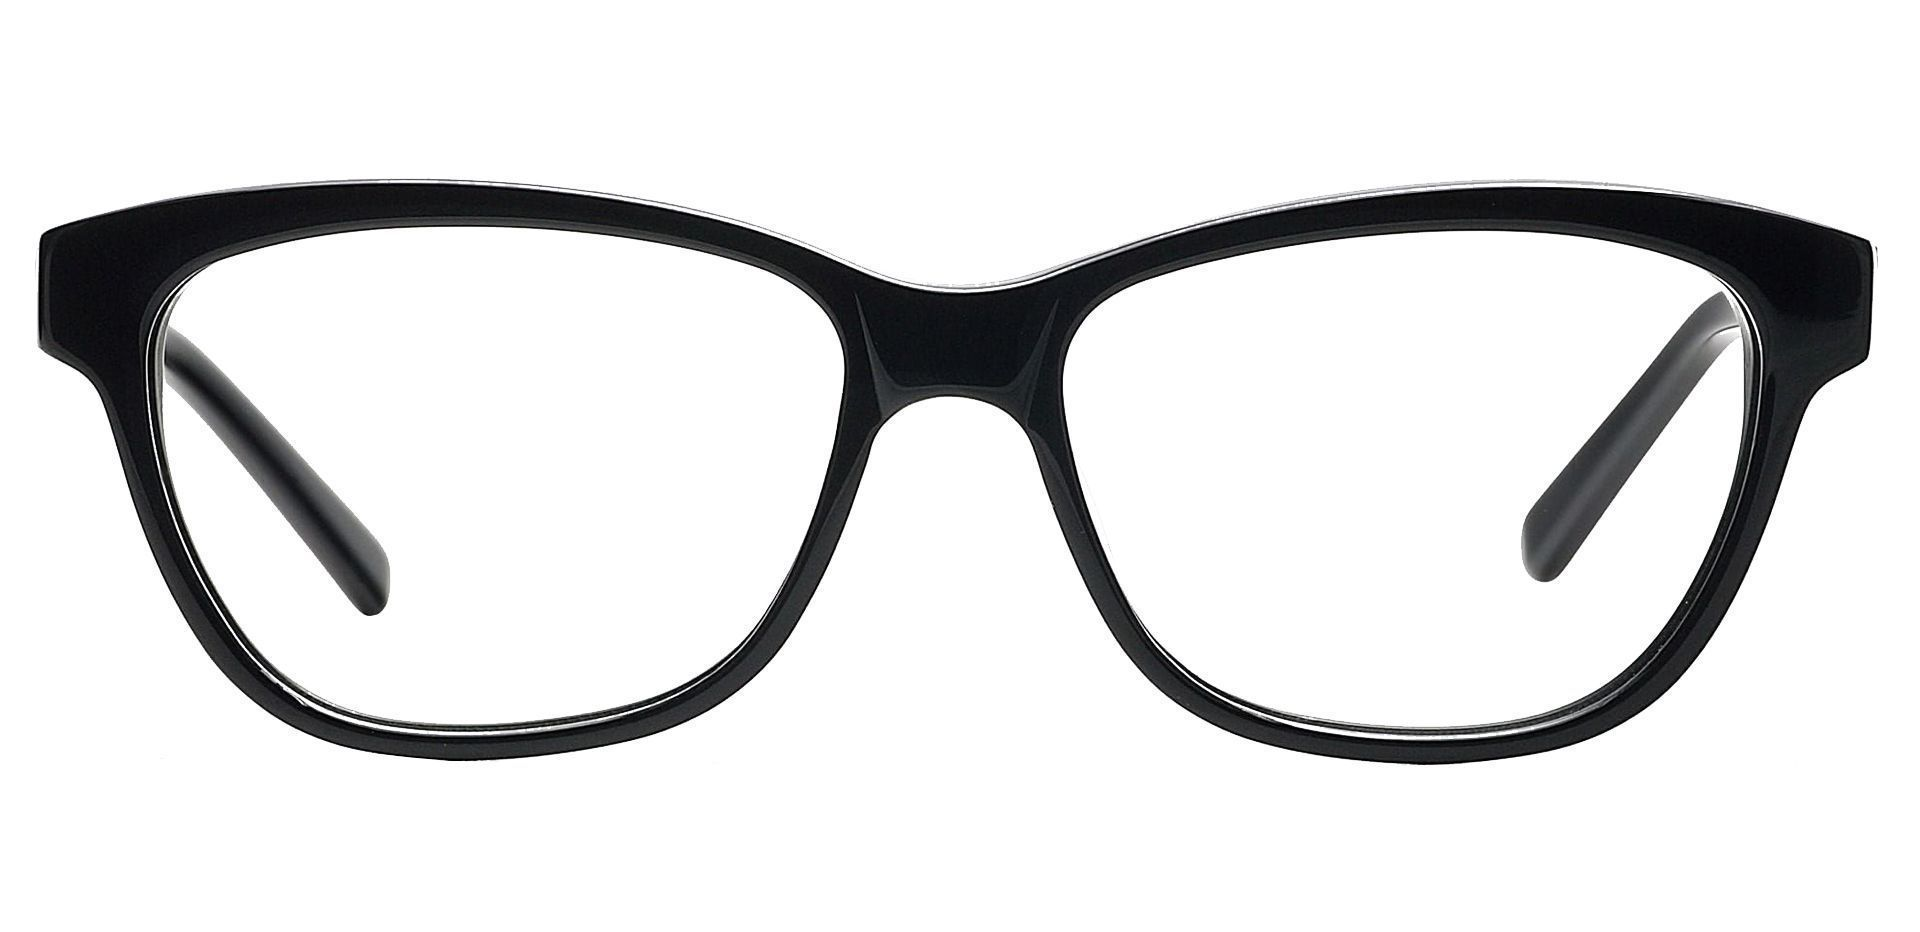 Verve Cat-eye Lined Bifocal Glasses - Black